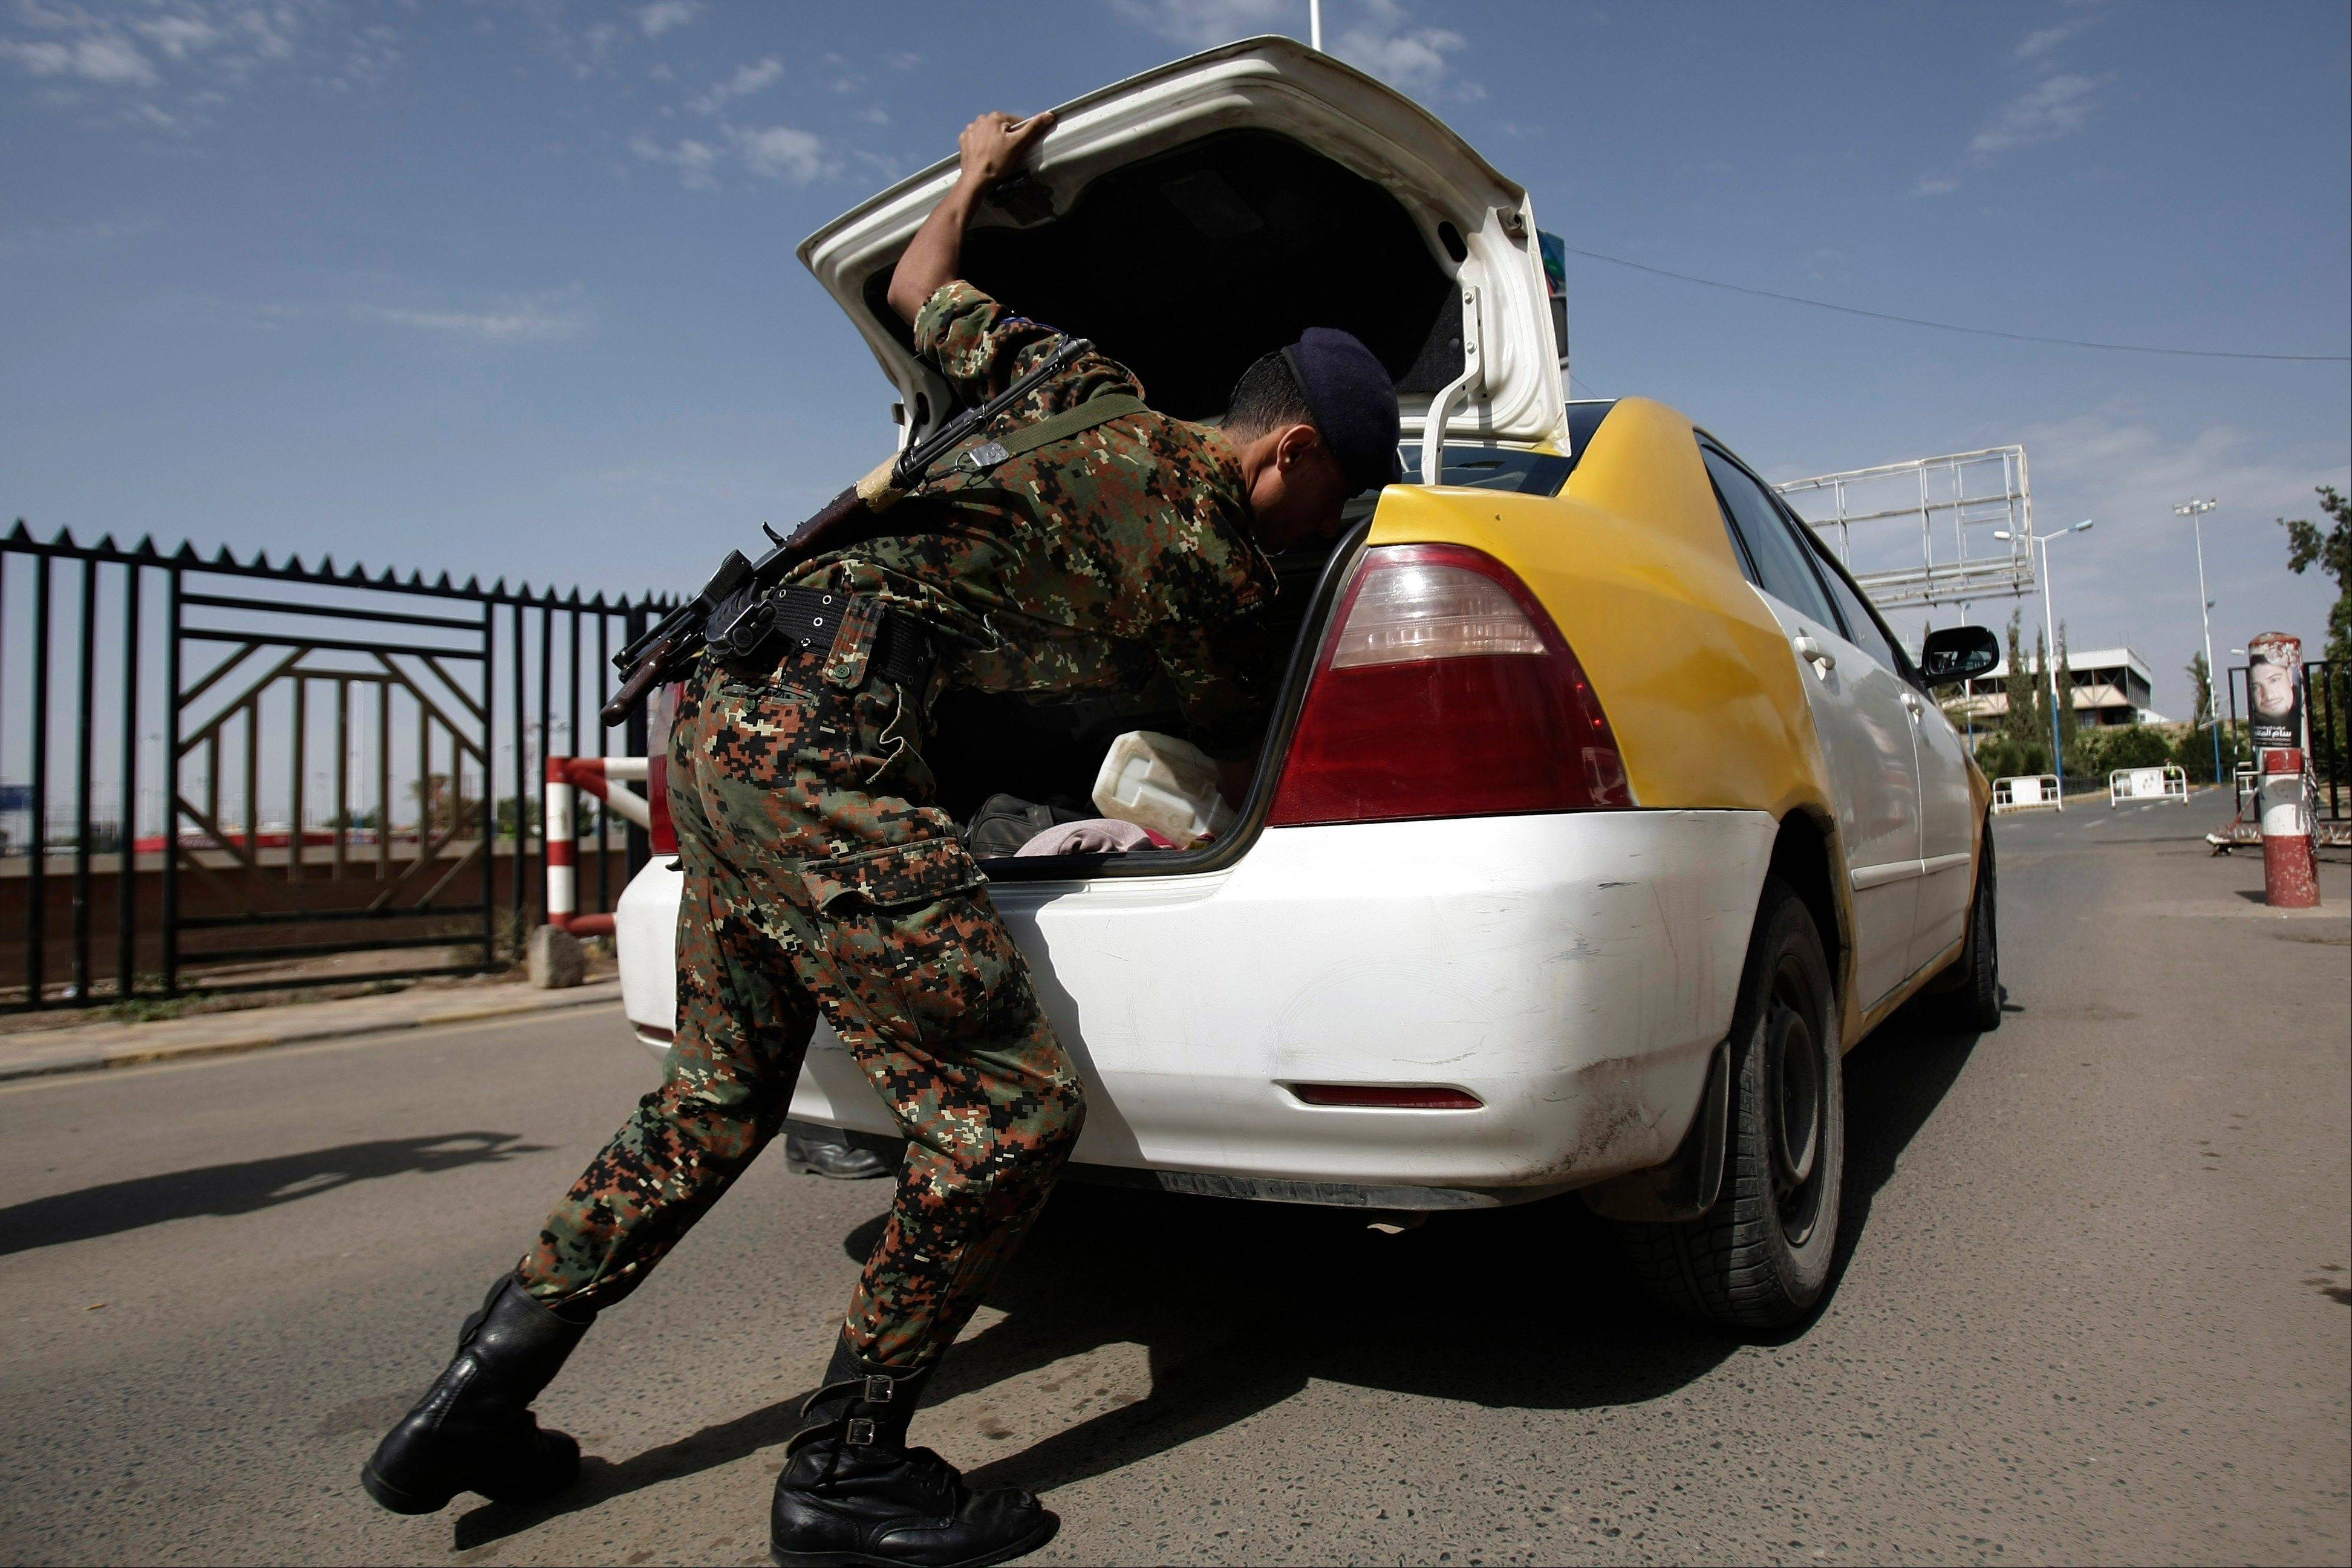 A policeman checks a car at the entrance of Sanaa International Airport, in Yemen, Wednesday, Aug. 7, 2013. The State Department on Tuesday ordered nonessential personnel at the U.S. Embassy in Yemen to leave the country.